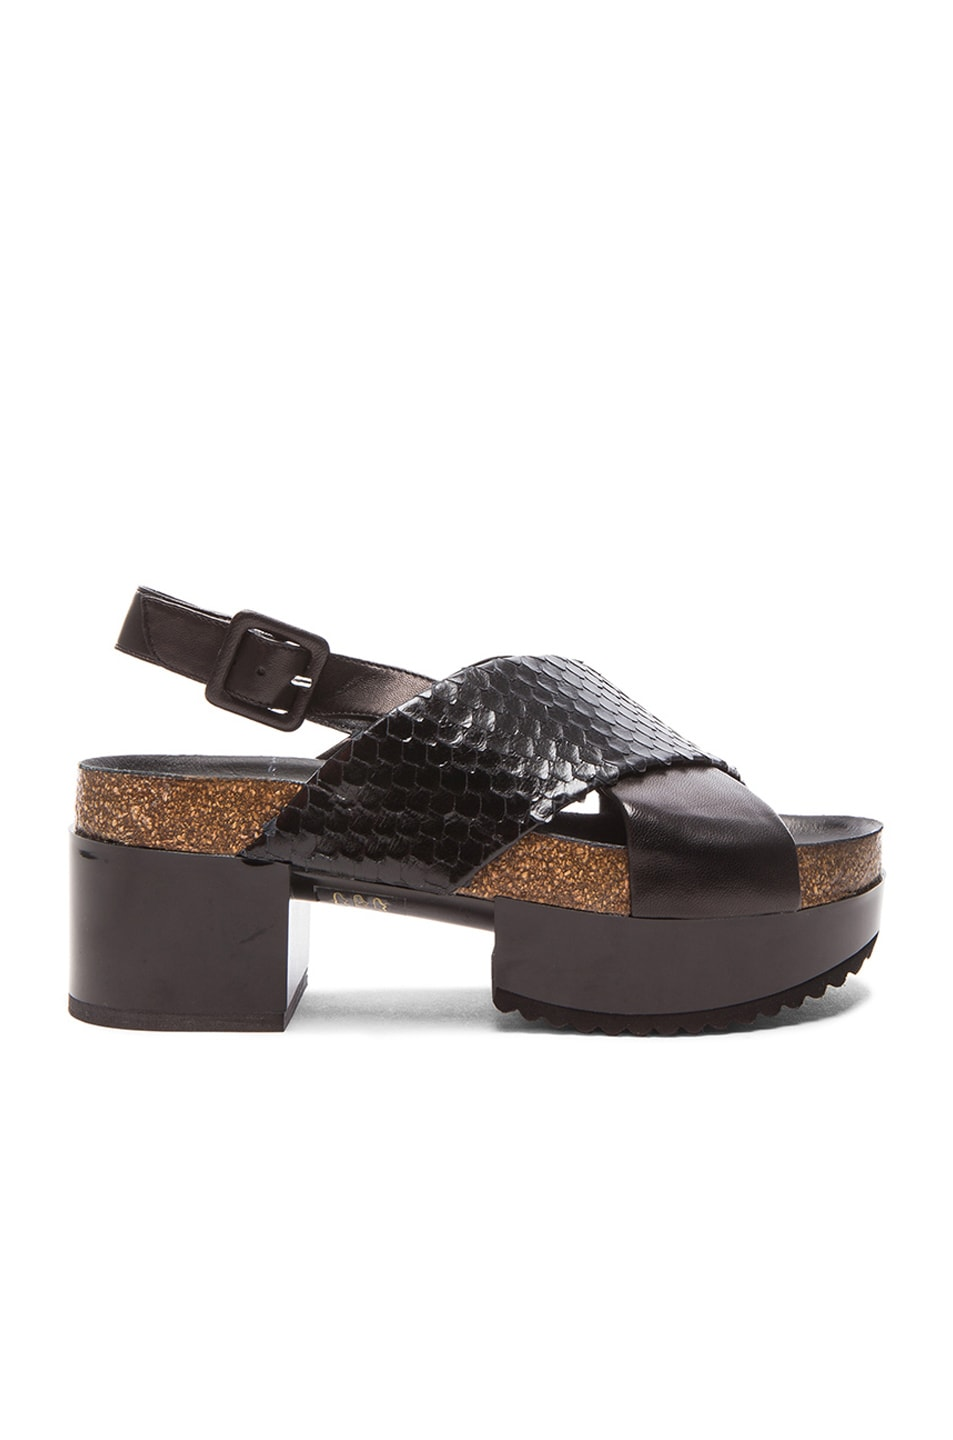 Robert Clergerie Leather Flip Flops 1jQiR